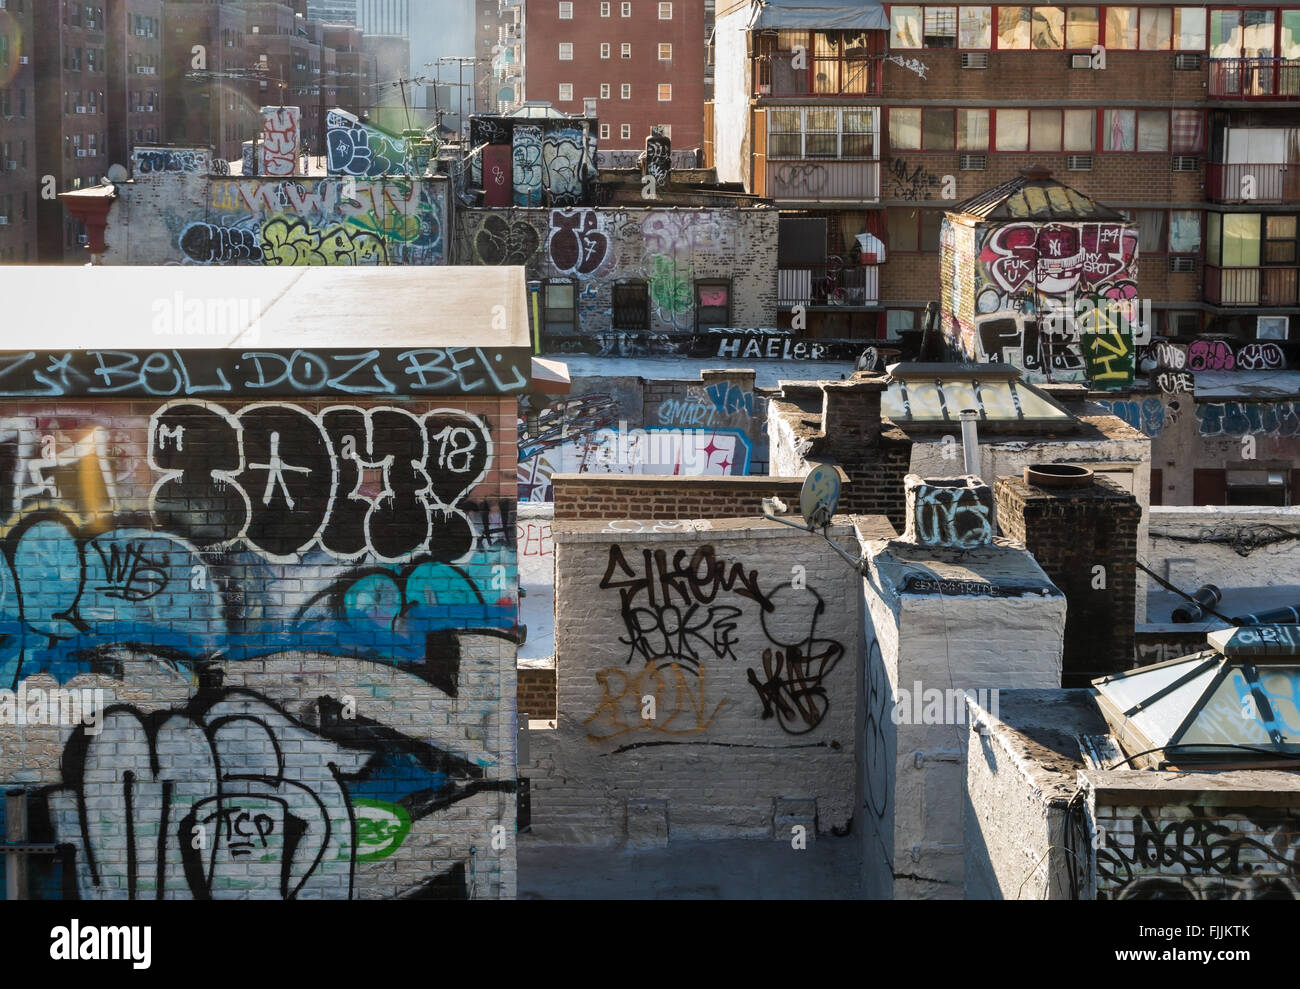 graffiti tags stockfotos graffiti tags bilder alamy. Black Bedroom Furniture Sets. Home Design Ideas